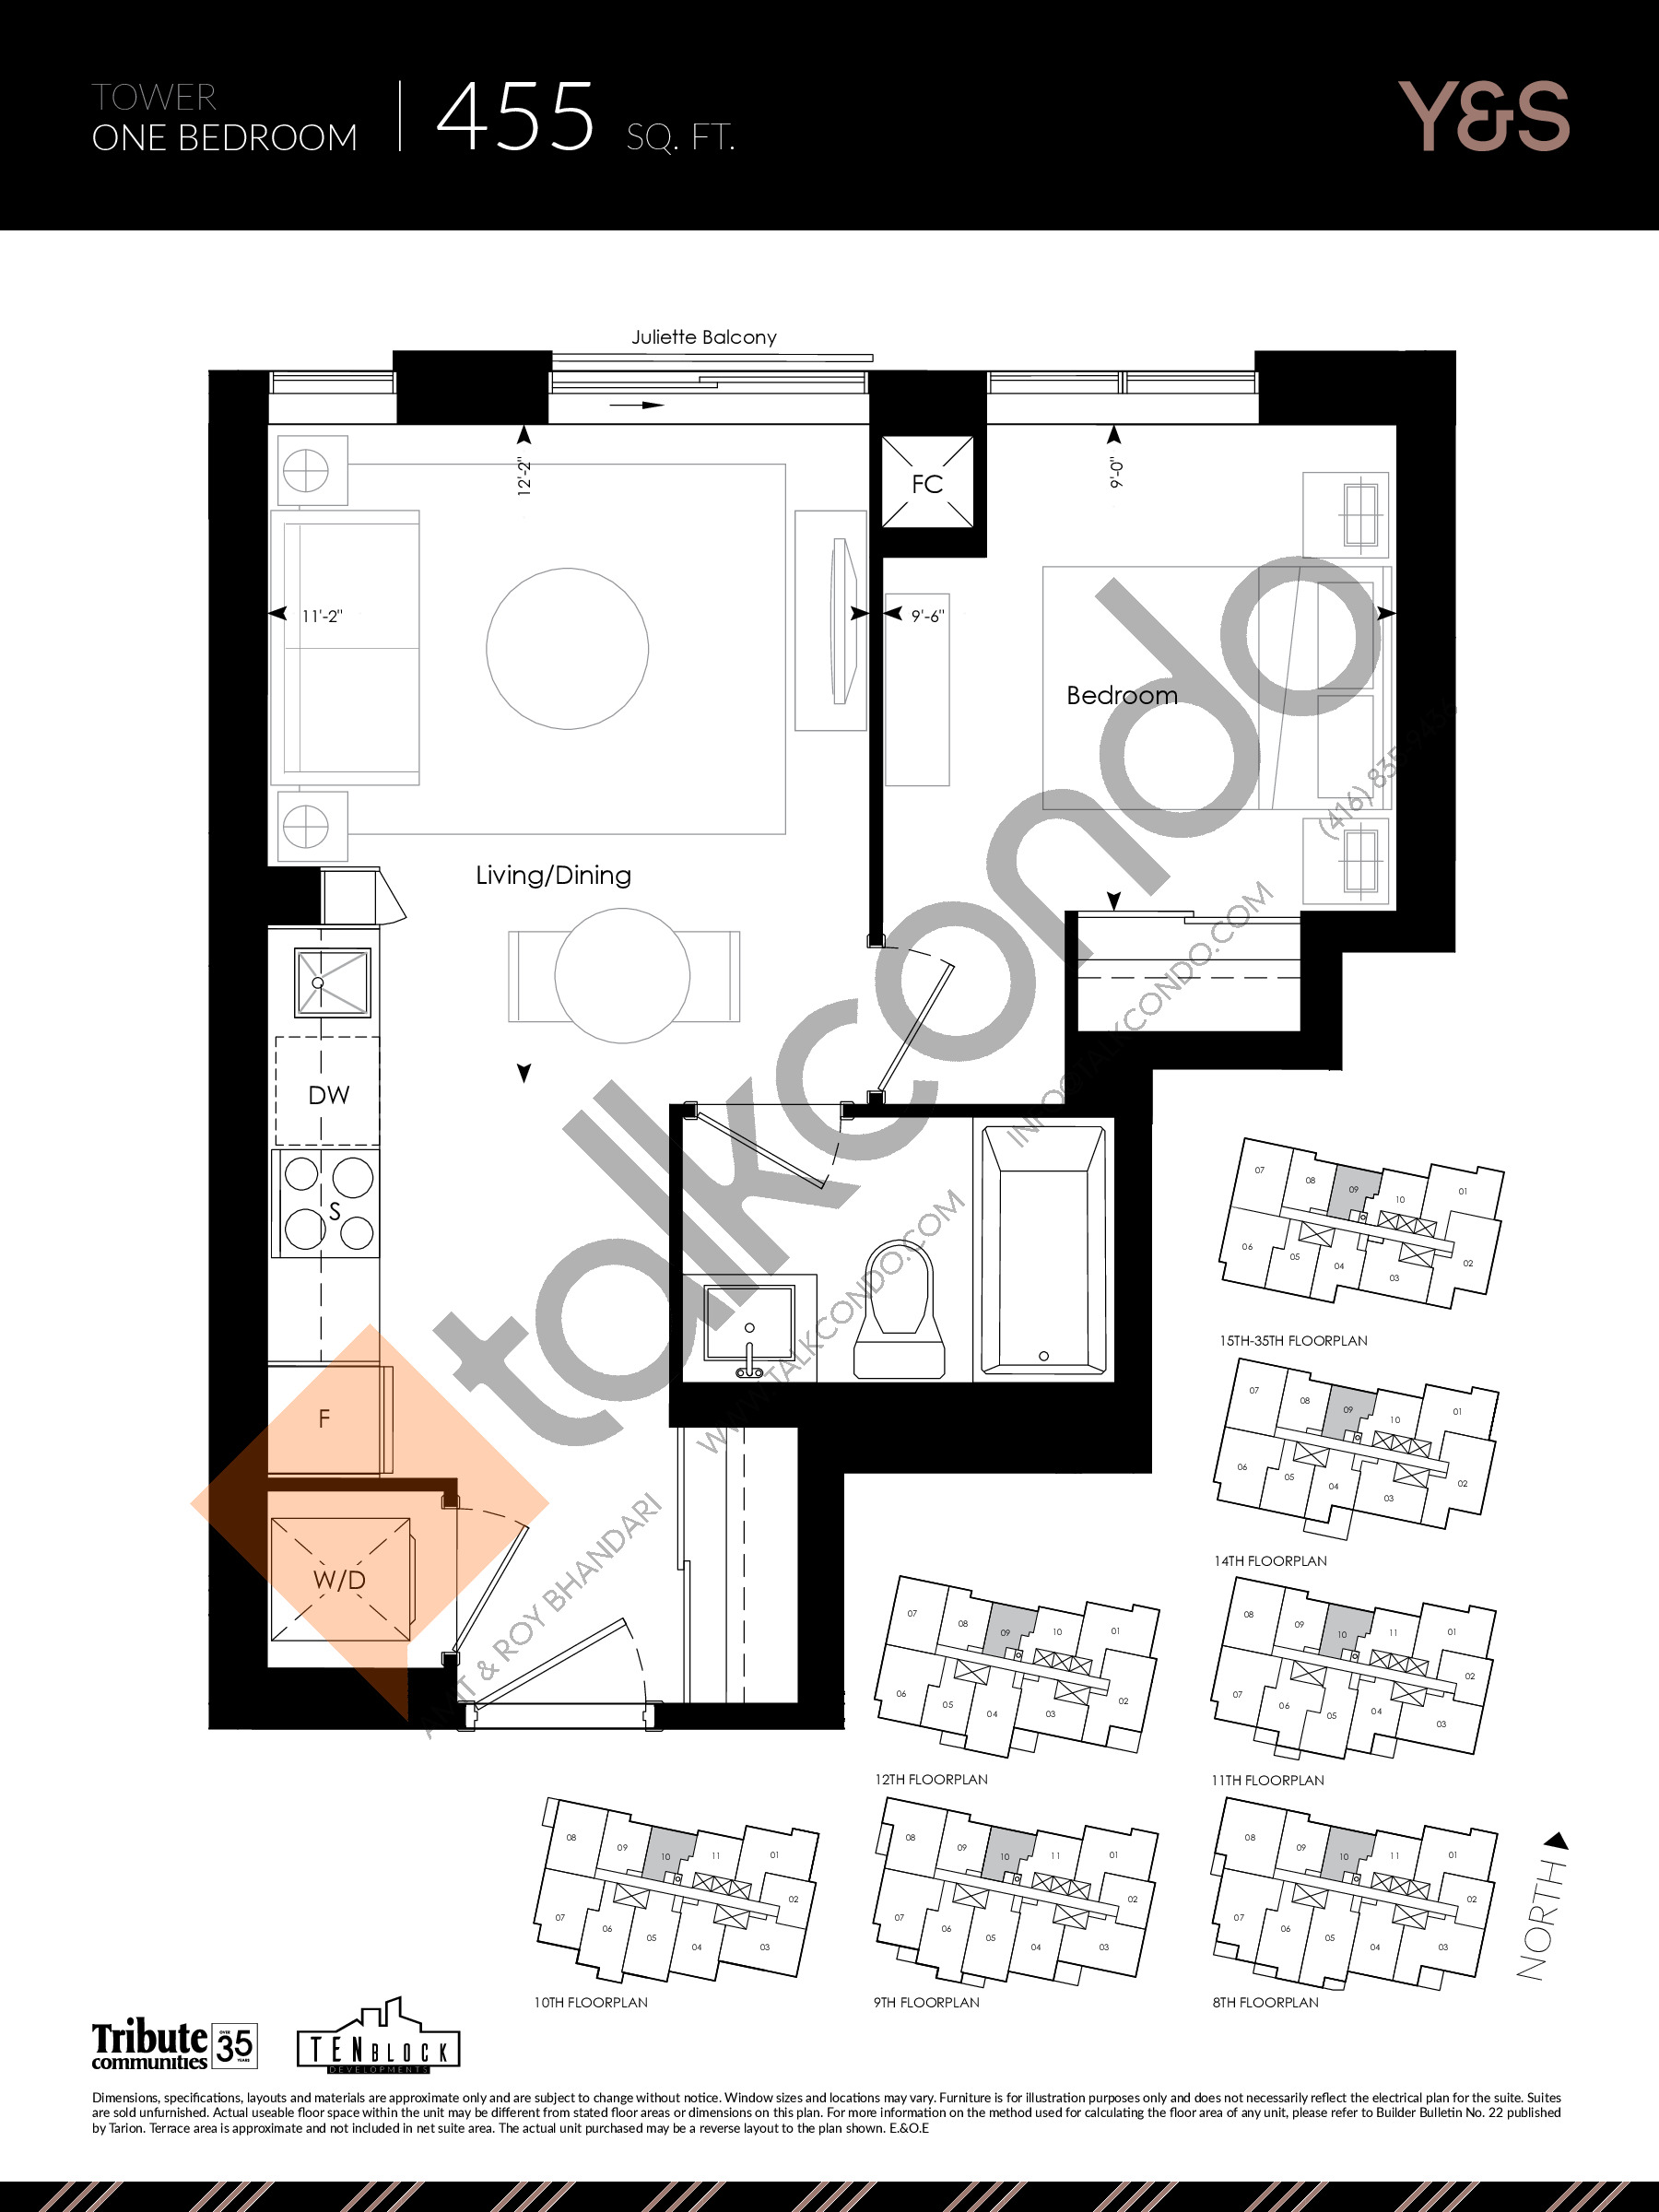 455 sq. ft. Floor Plan at Y&S Condos - 455 sq.ft